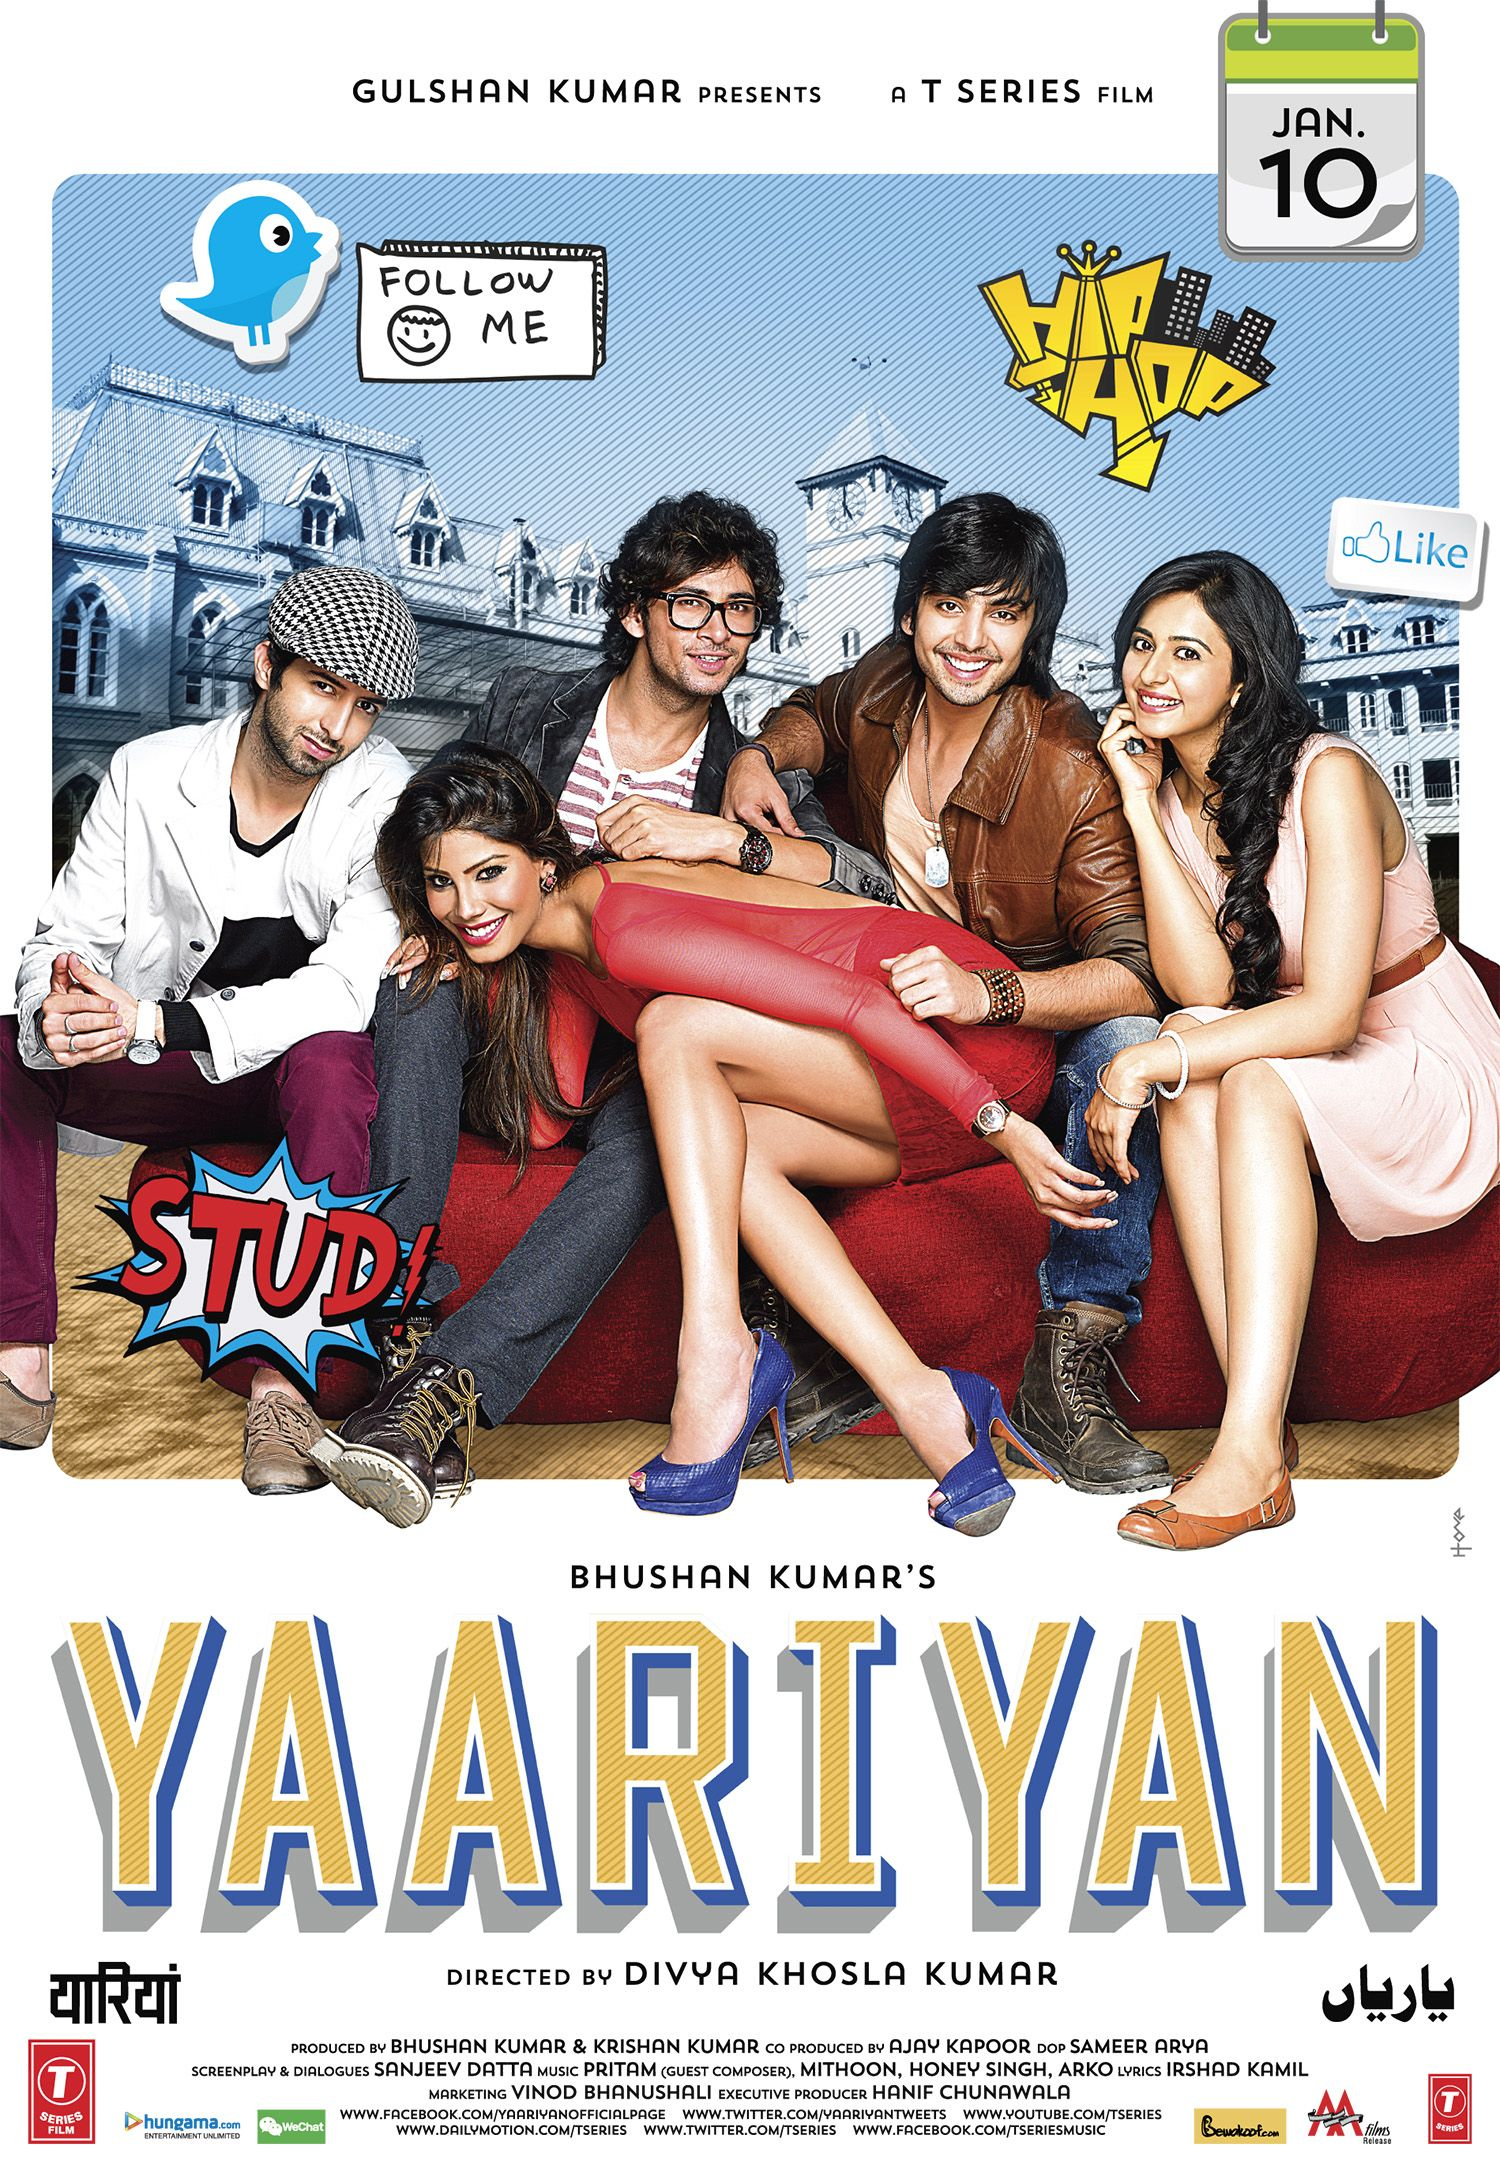 Yaariyan Movies 2014, Hd Movies, Movie Songs, Films, Watch Hindi Movies  Online